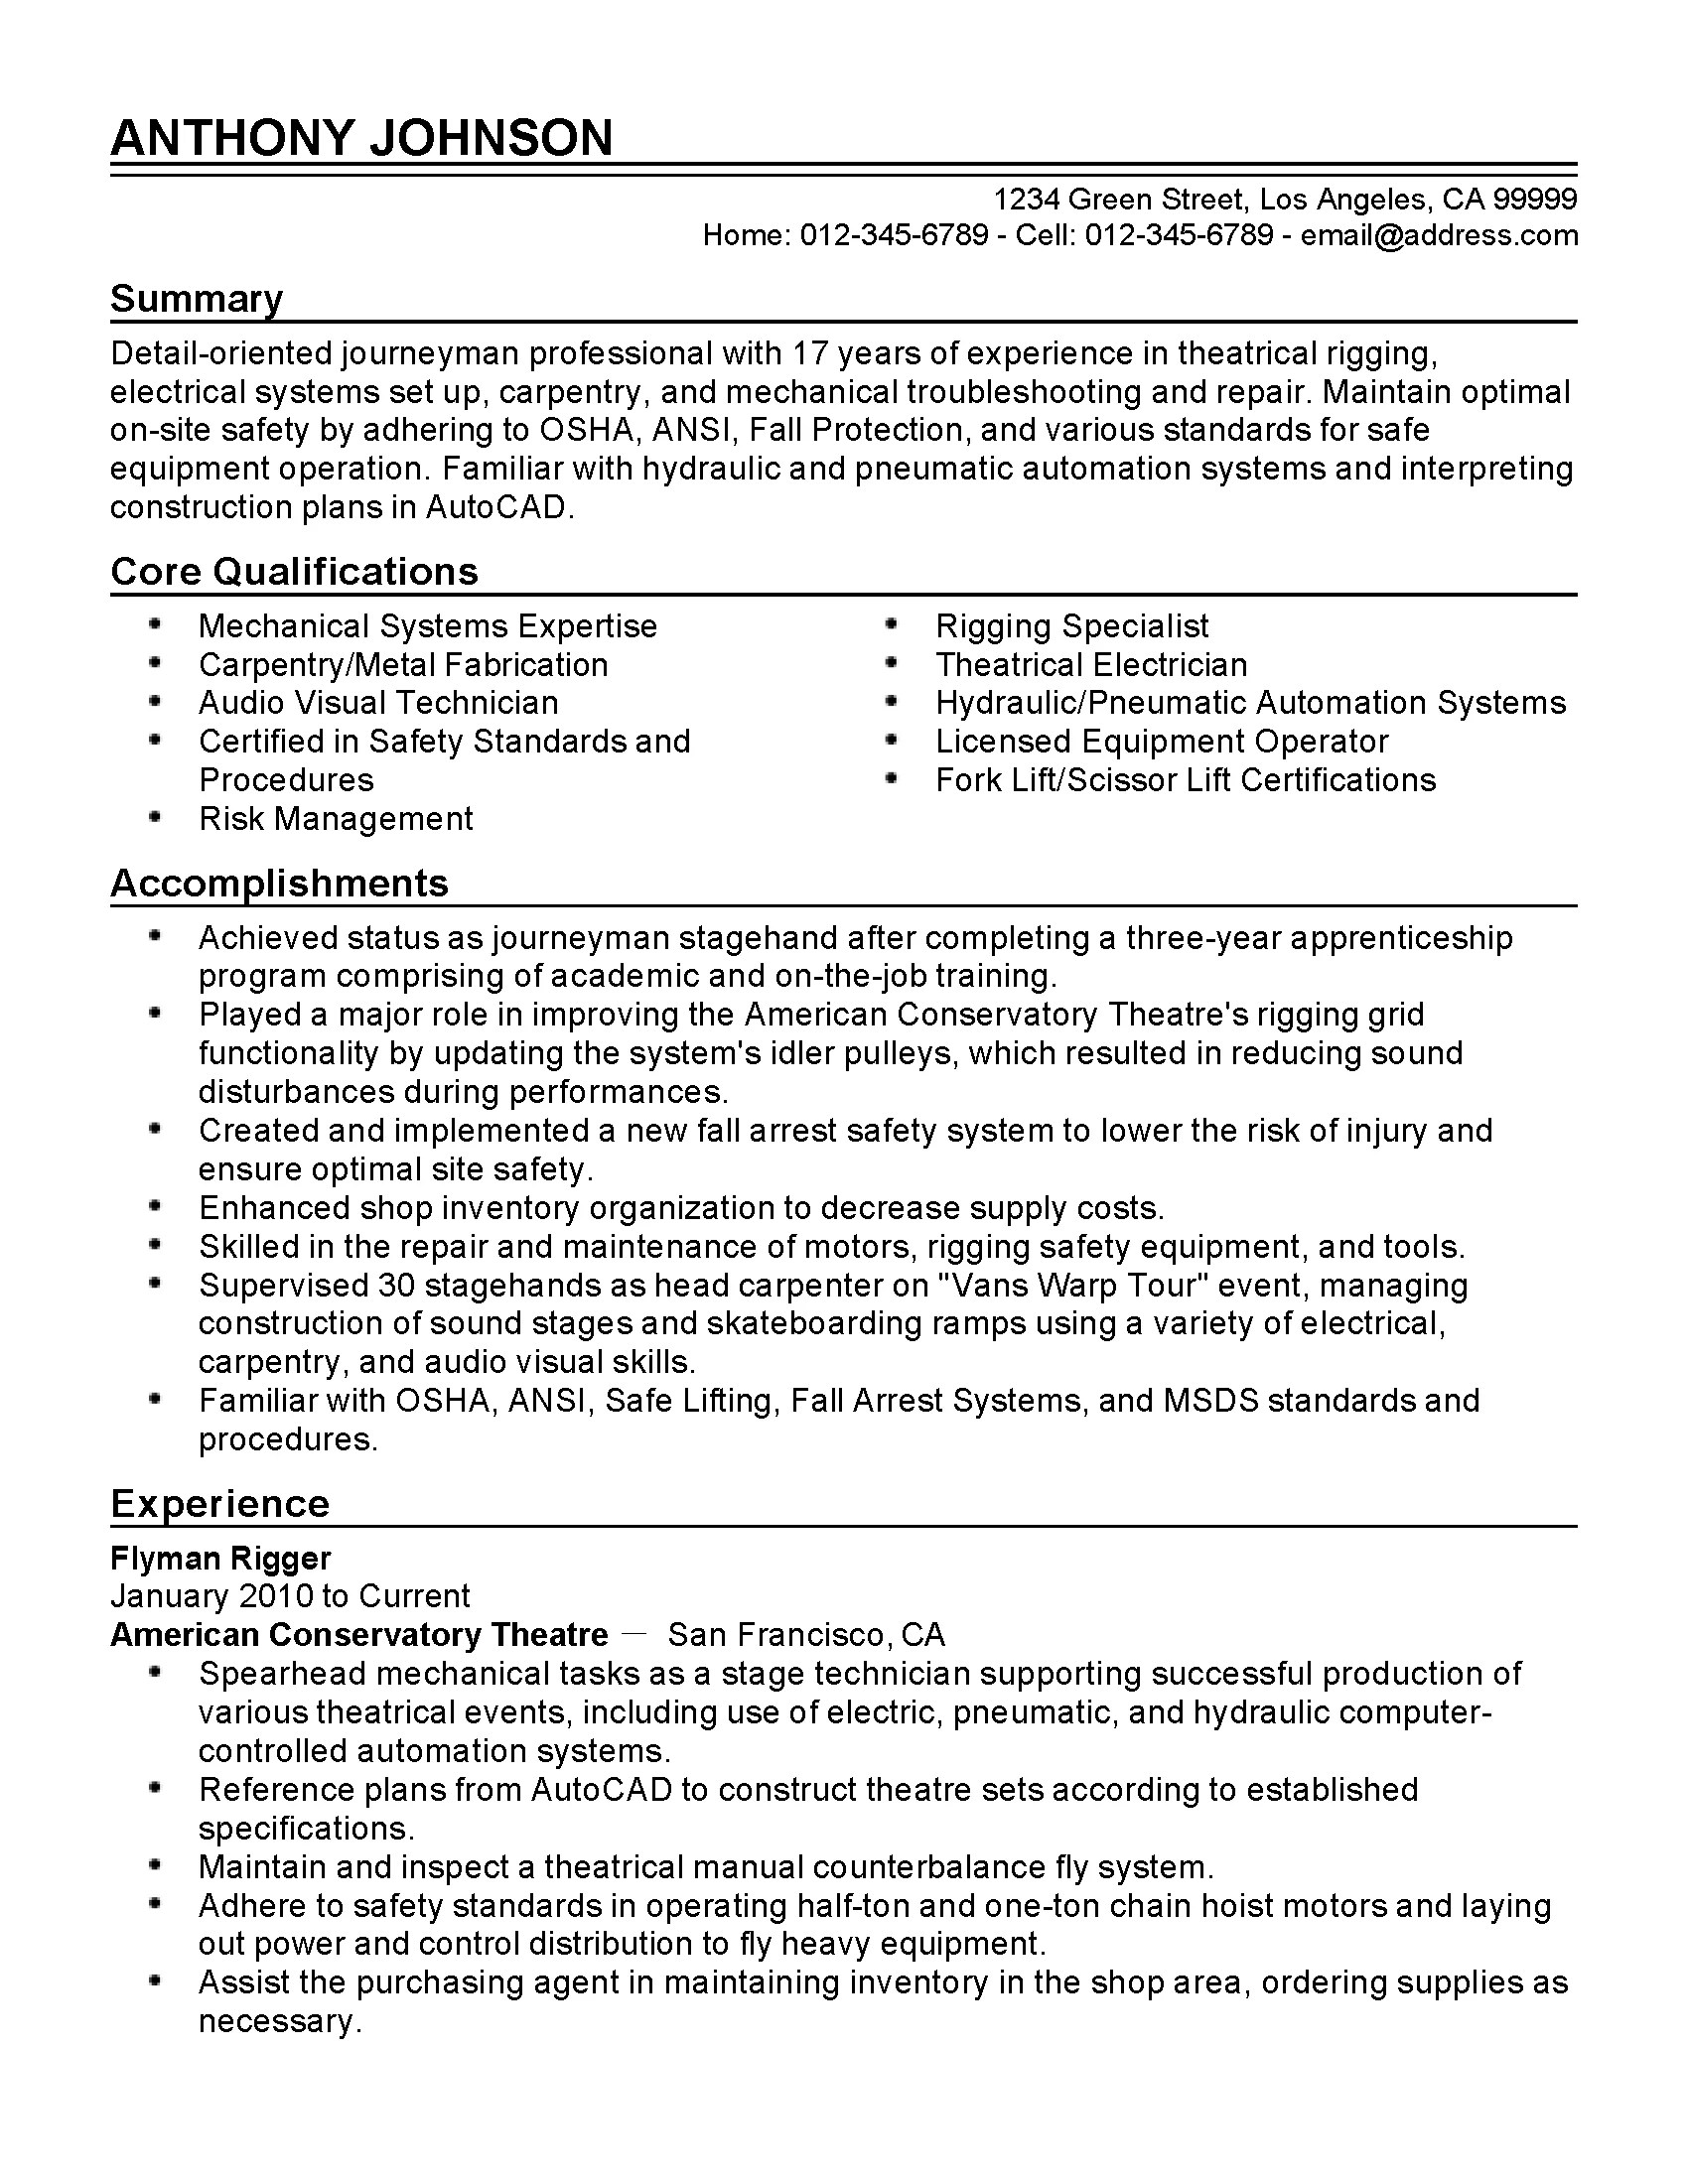 resume summary qualifications samples resume summary examples sample customer service resume summary resume examples interesting art - Sample Of Summary For Resume